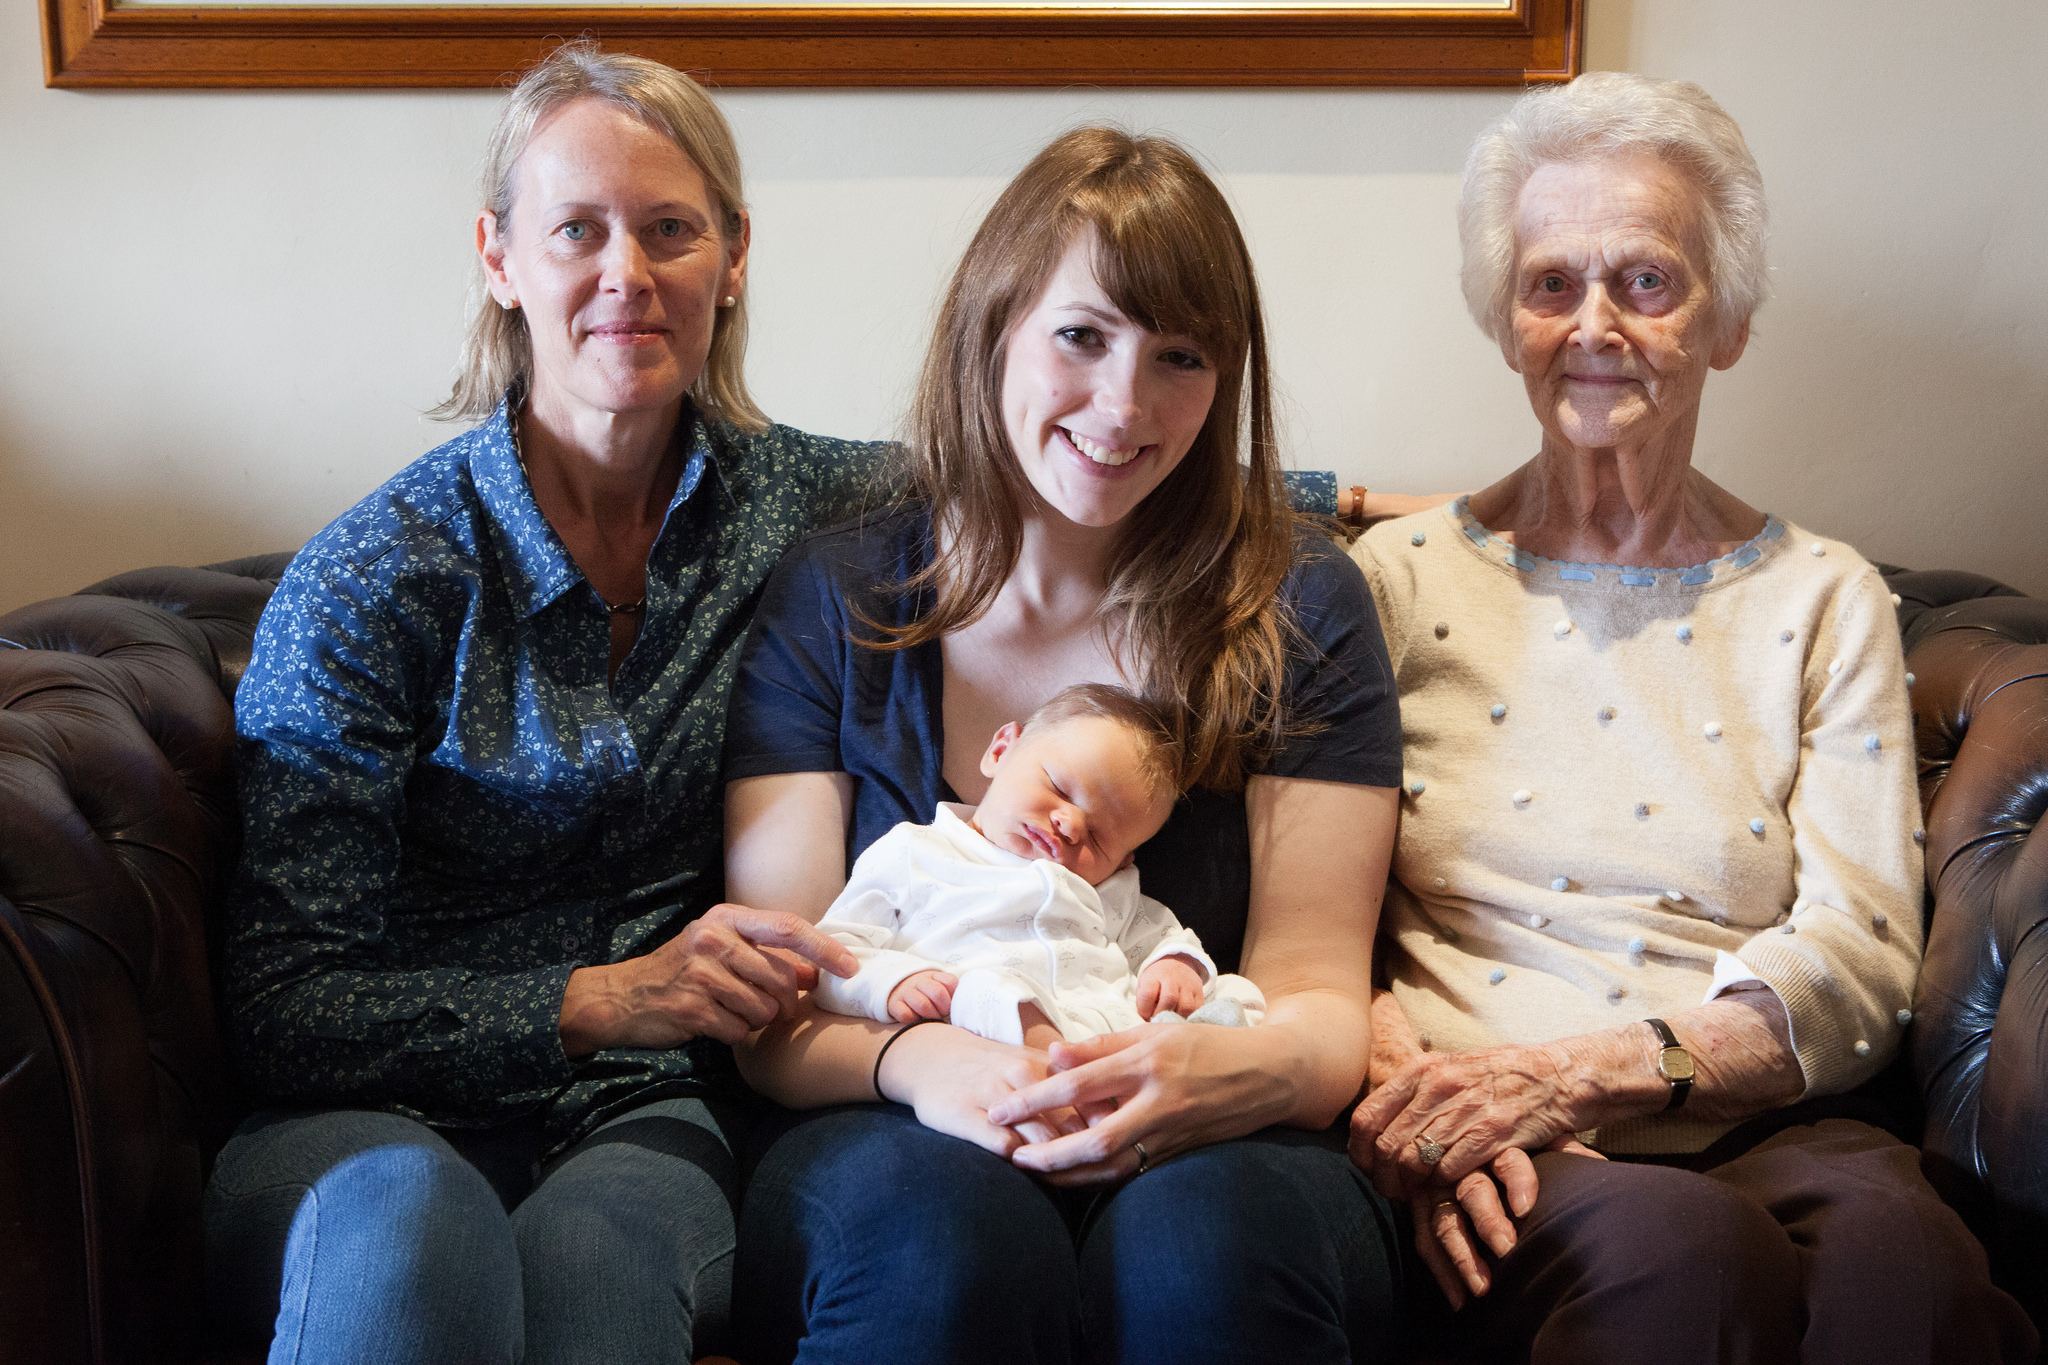 Freddie and his Granny and Great Granny